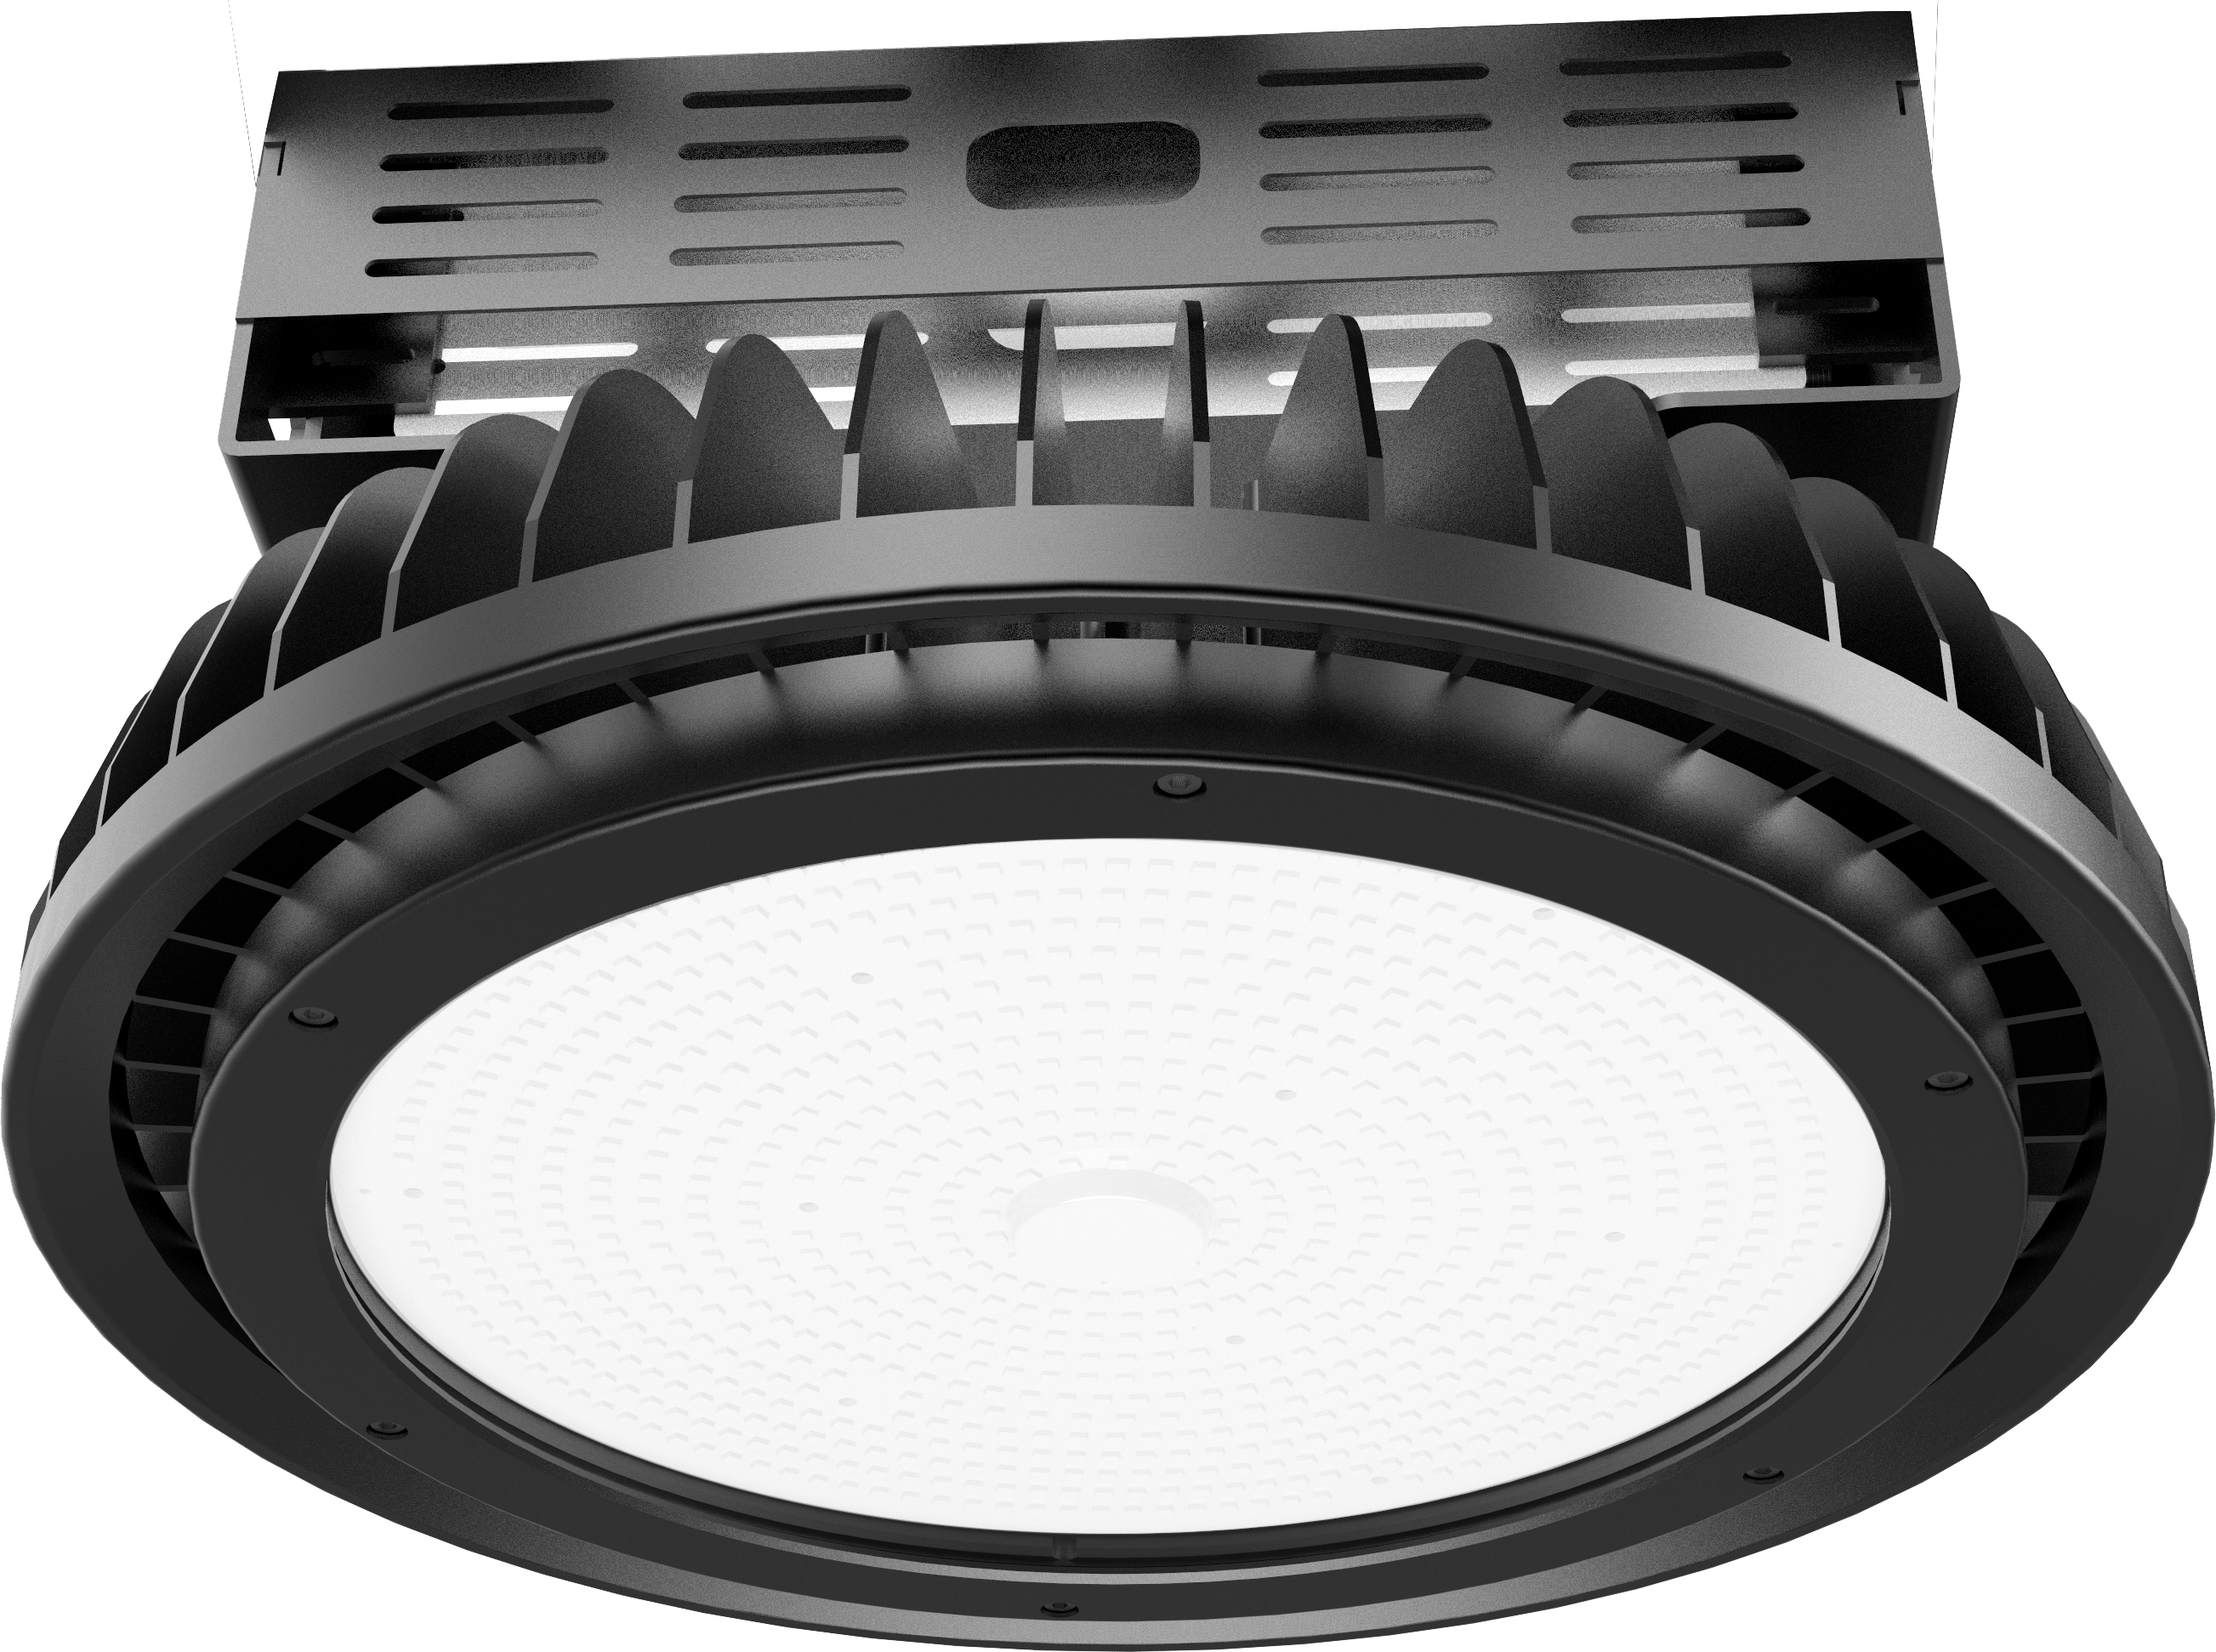 SportHB Circular High Bay for high ceiling sports applications